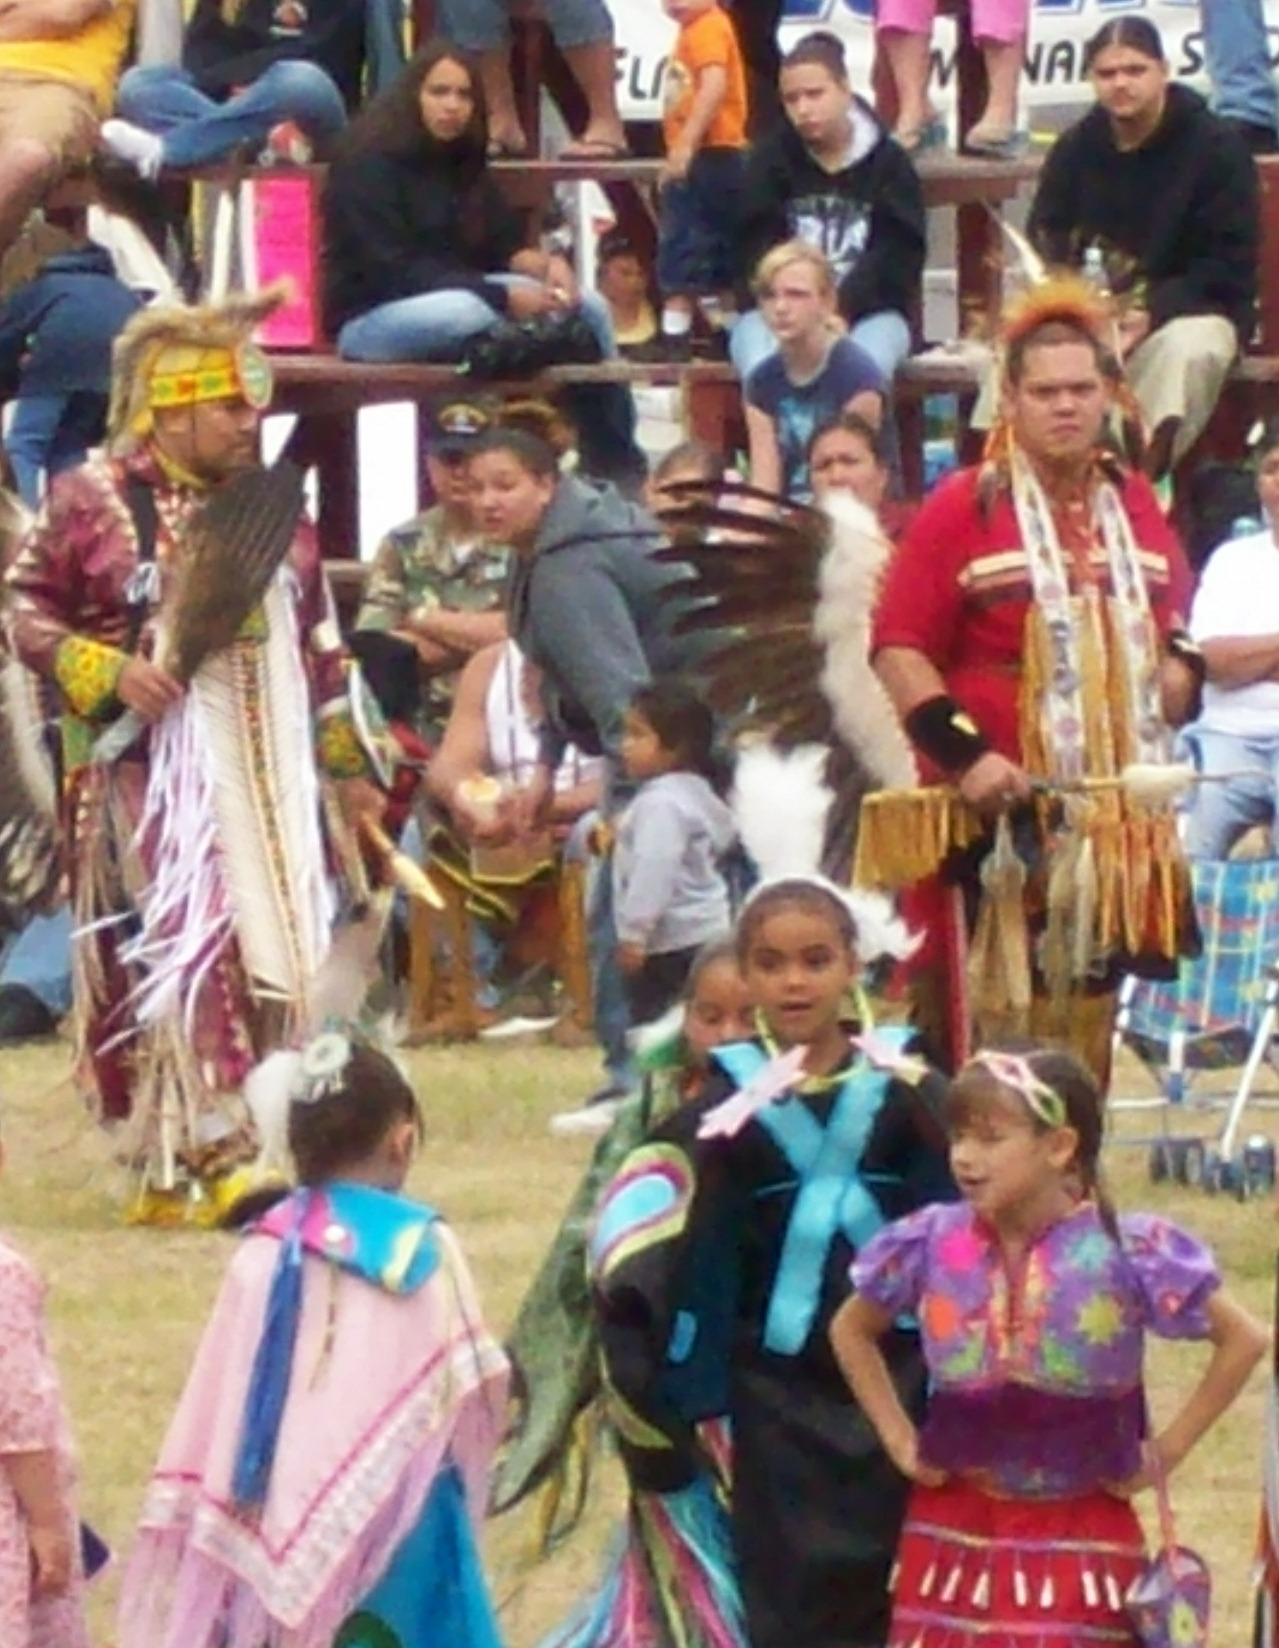 The Lac du Flambeau Bear River Pow Wow.